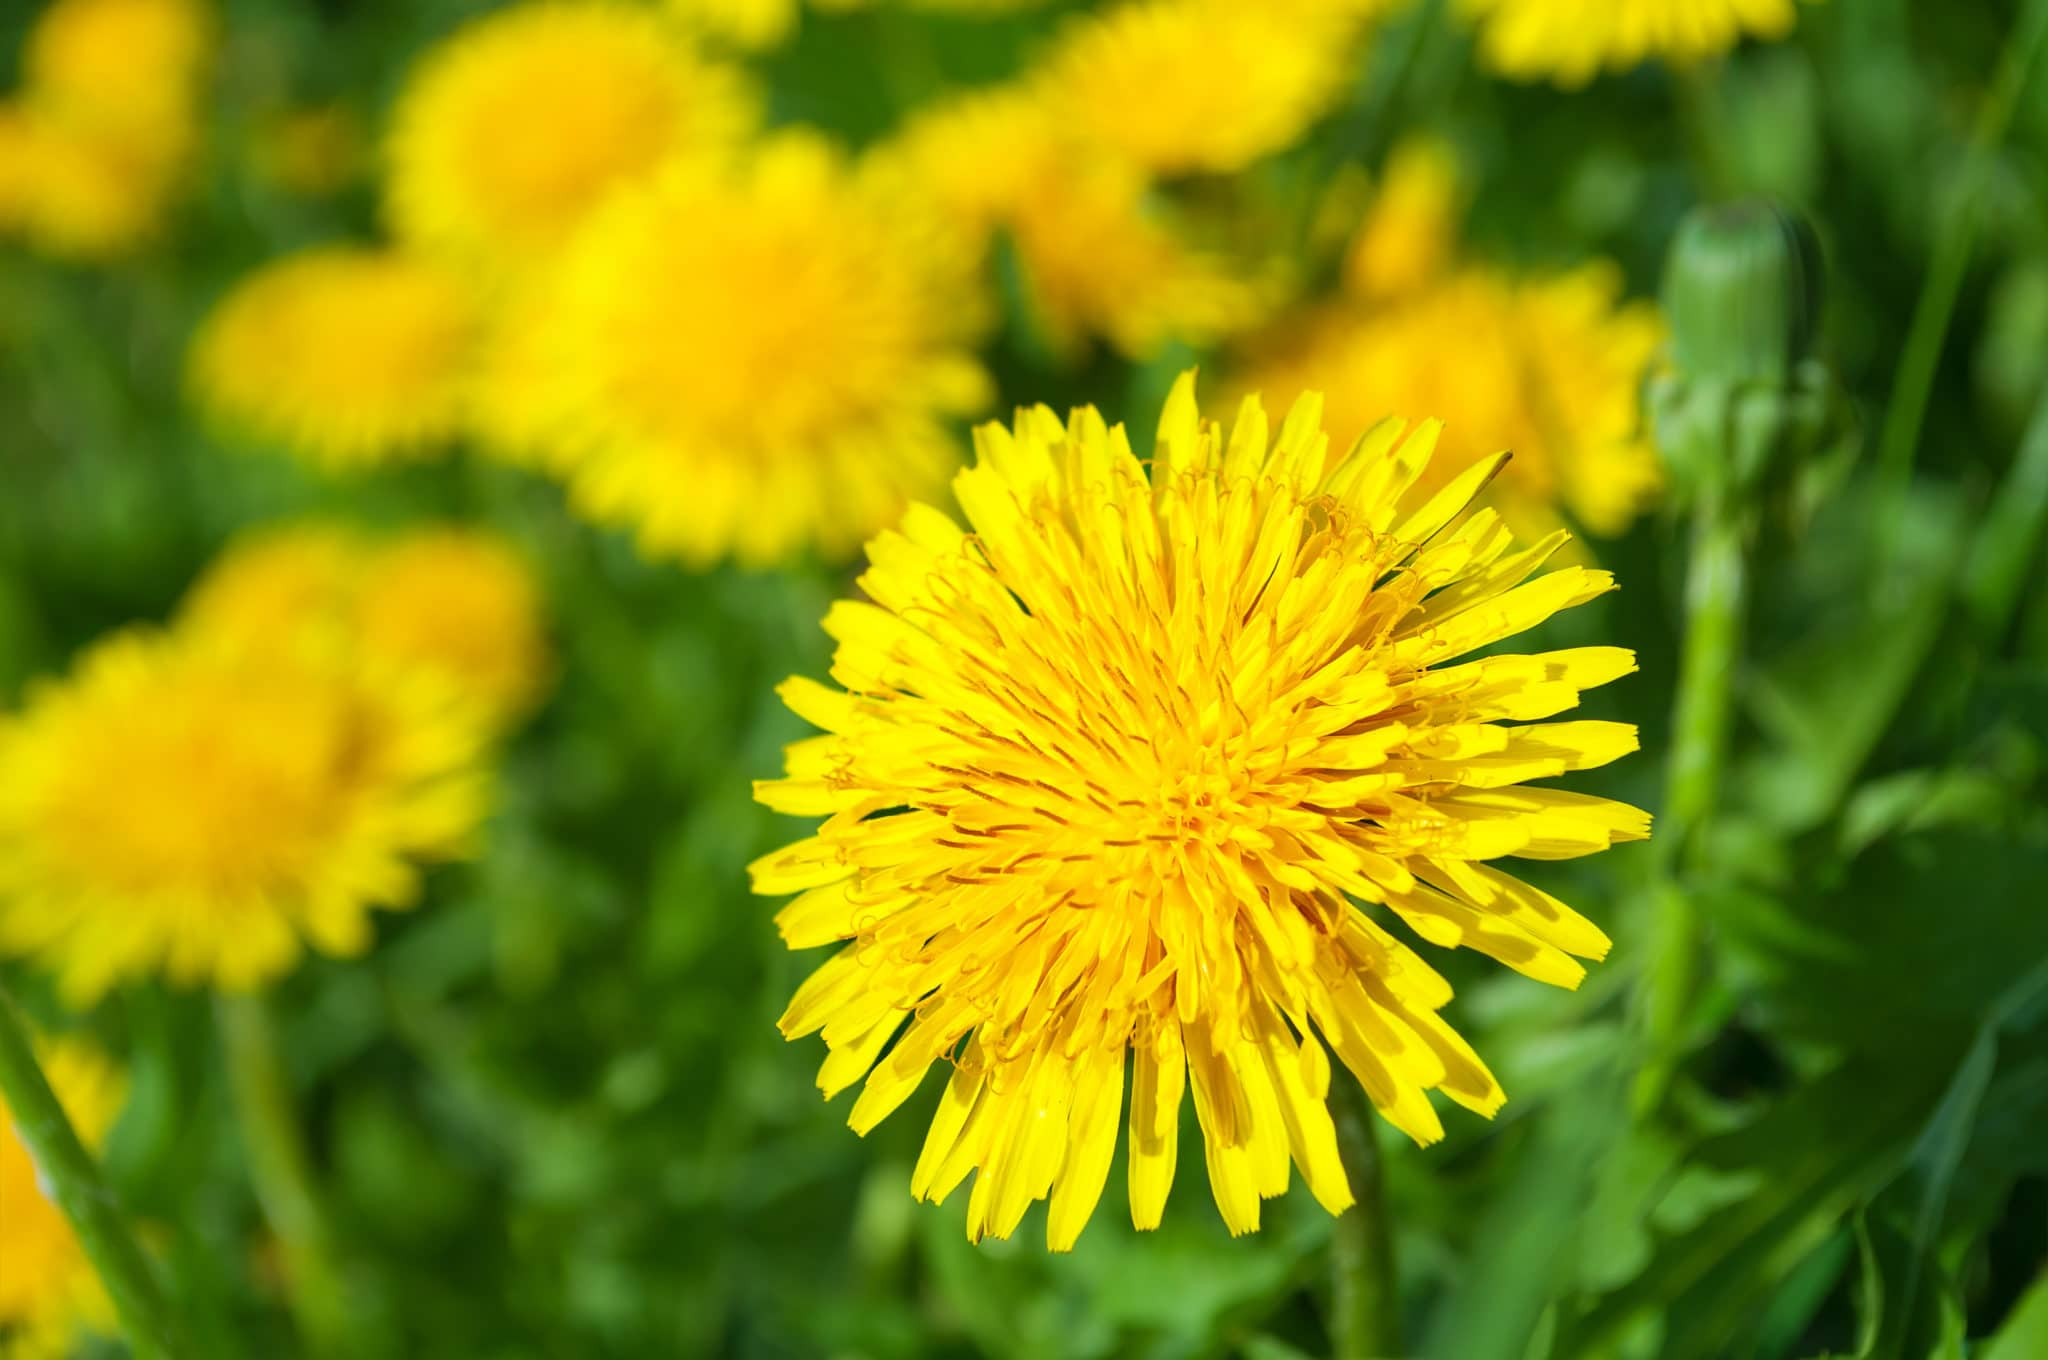 dandelions in the spring